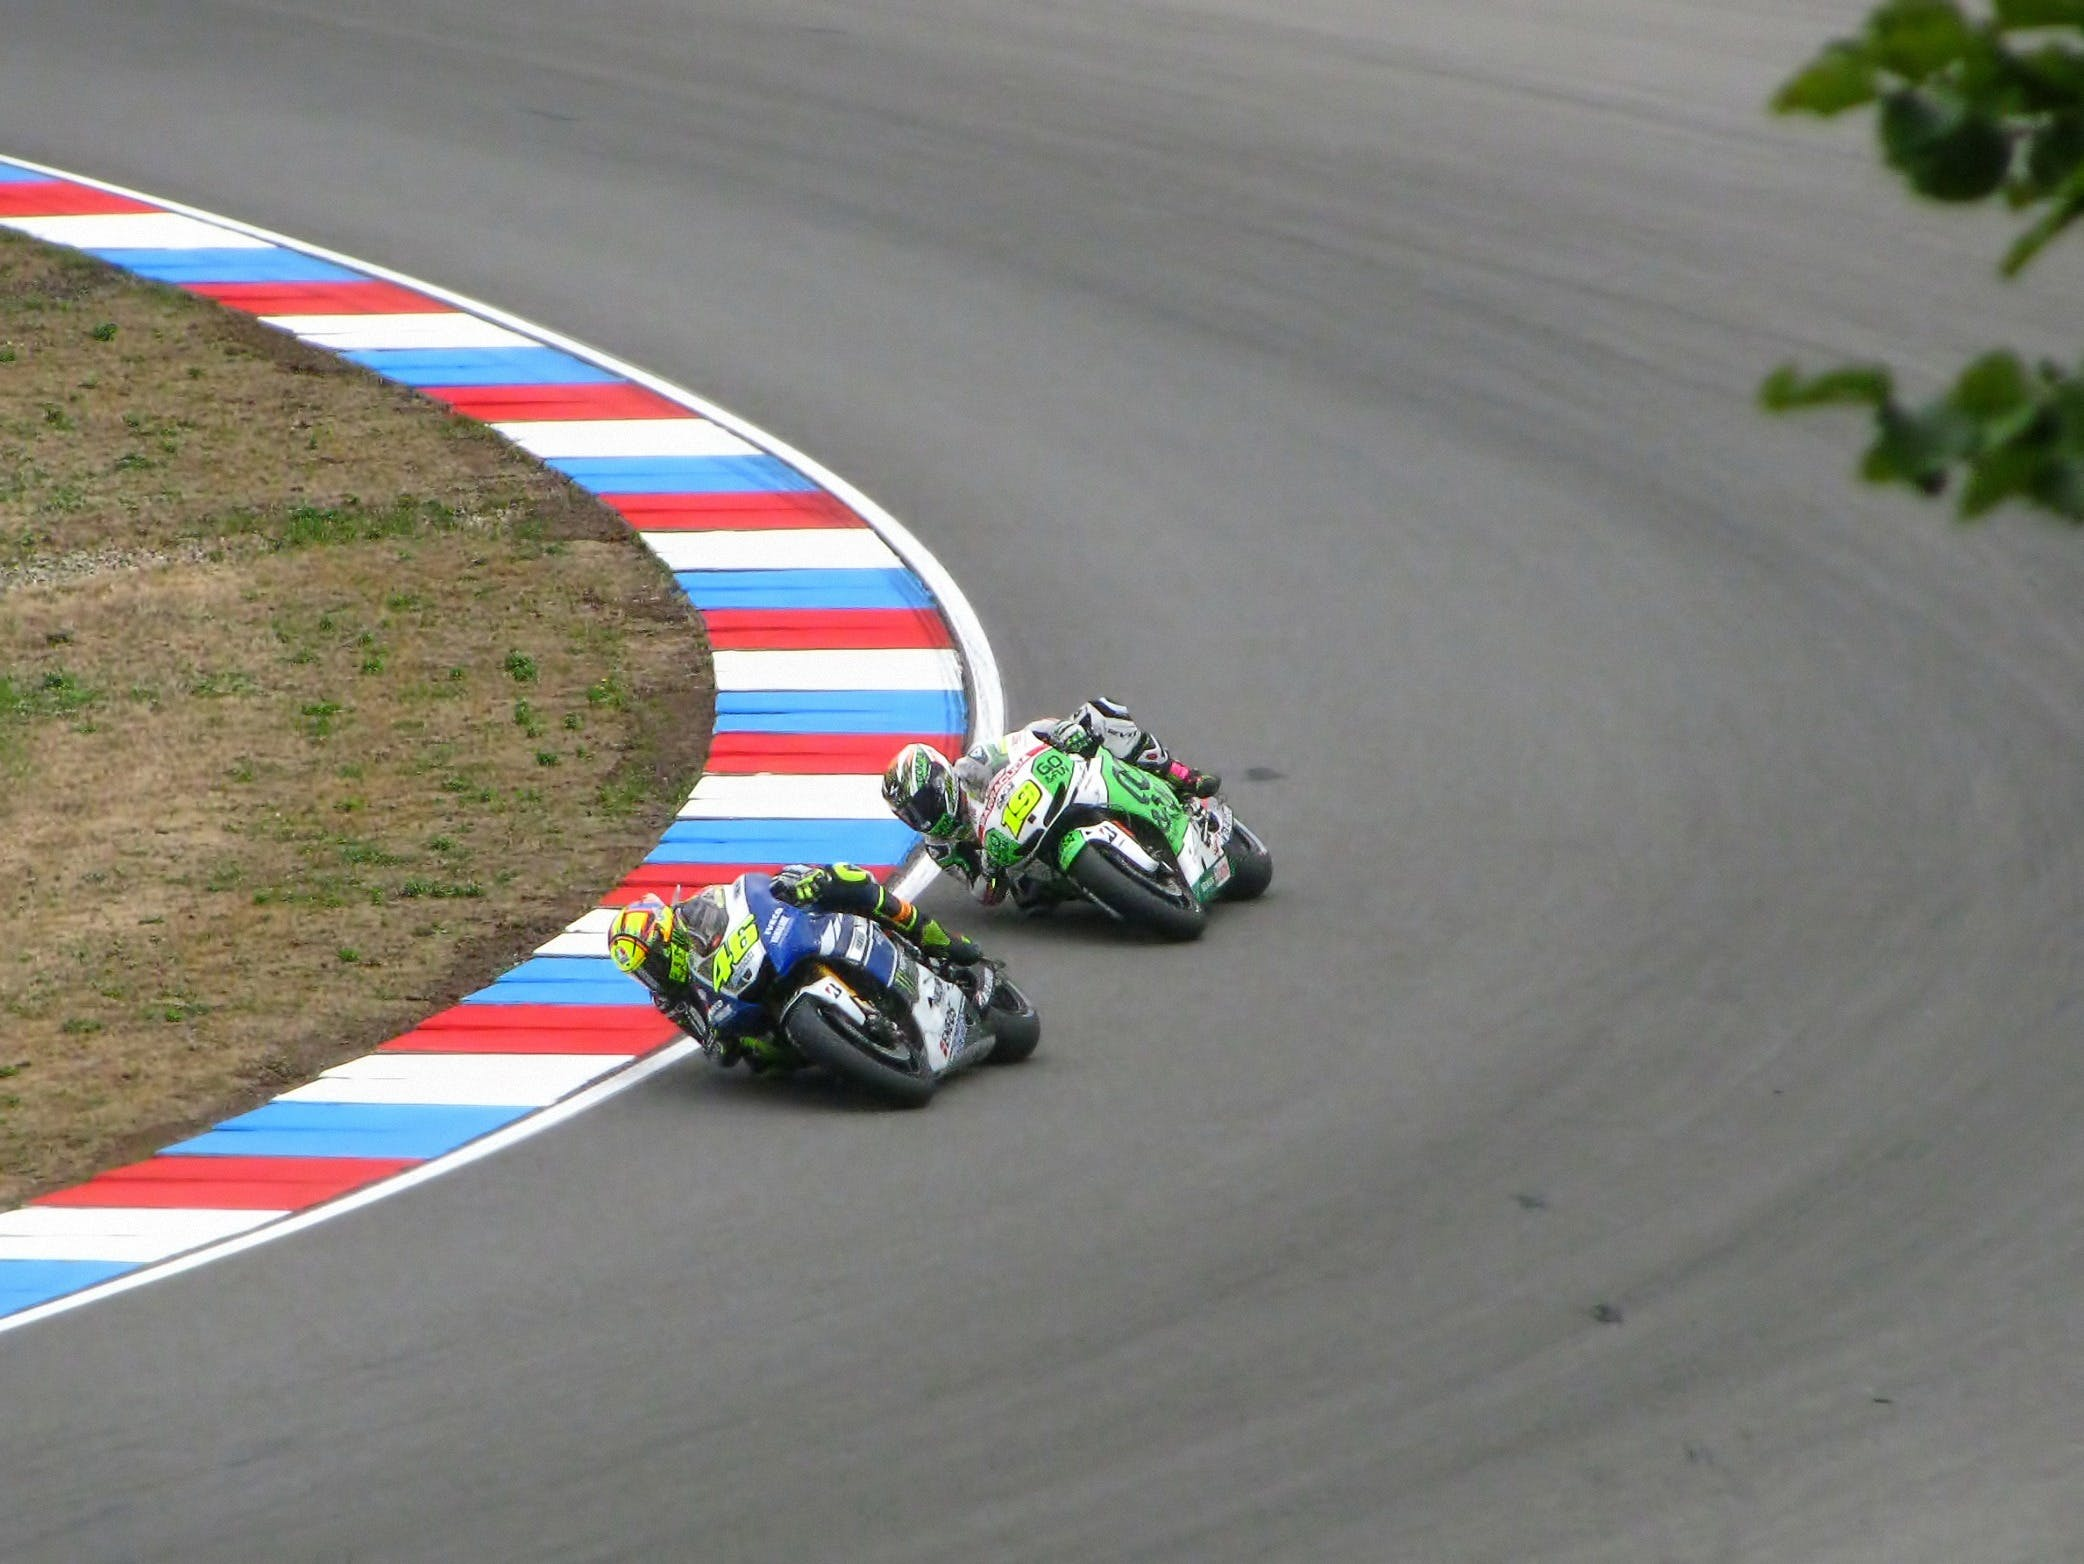 Racing Between 2 Men Riding Motorcycle